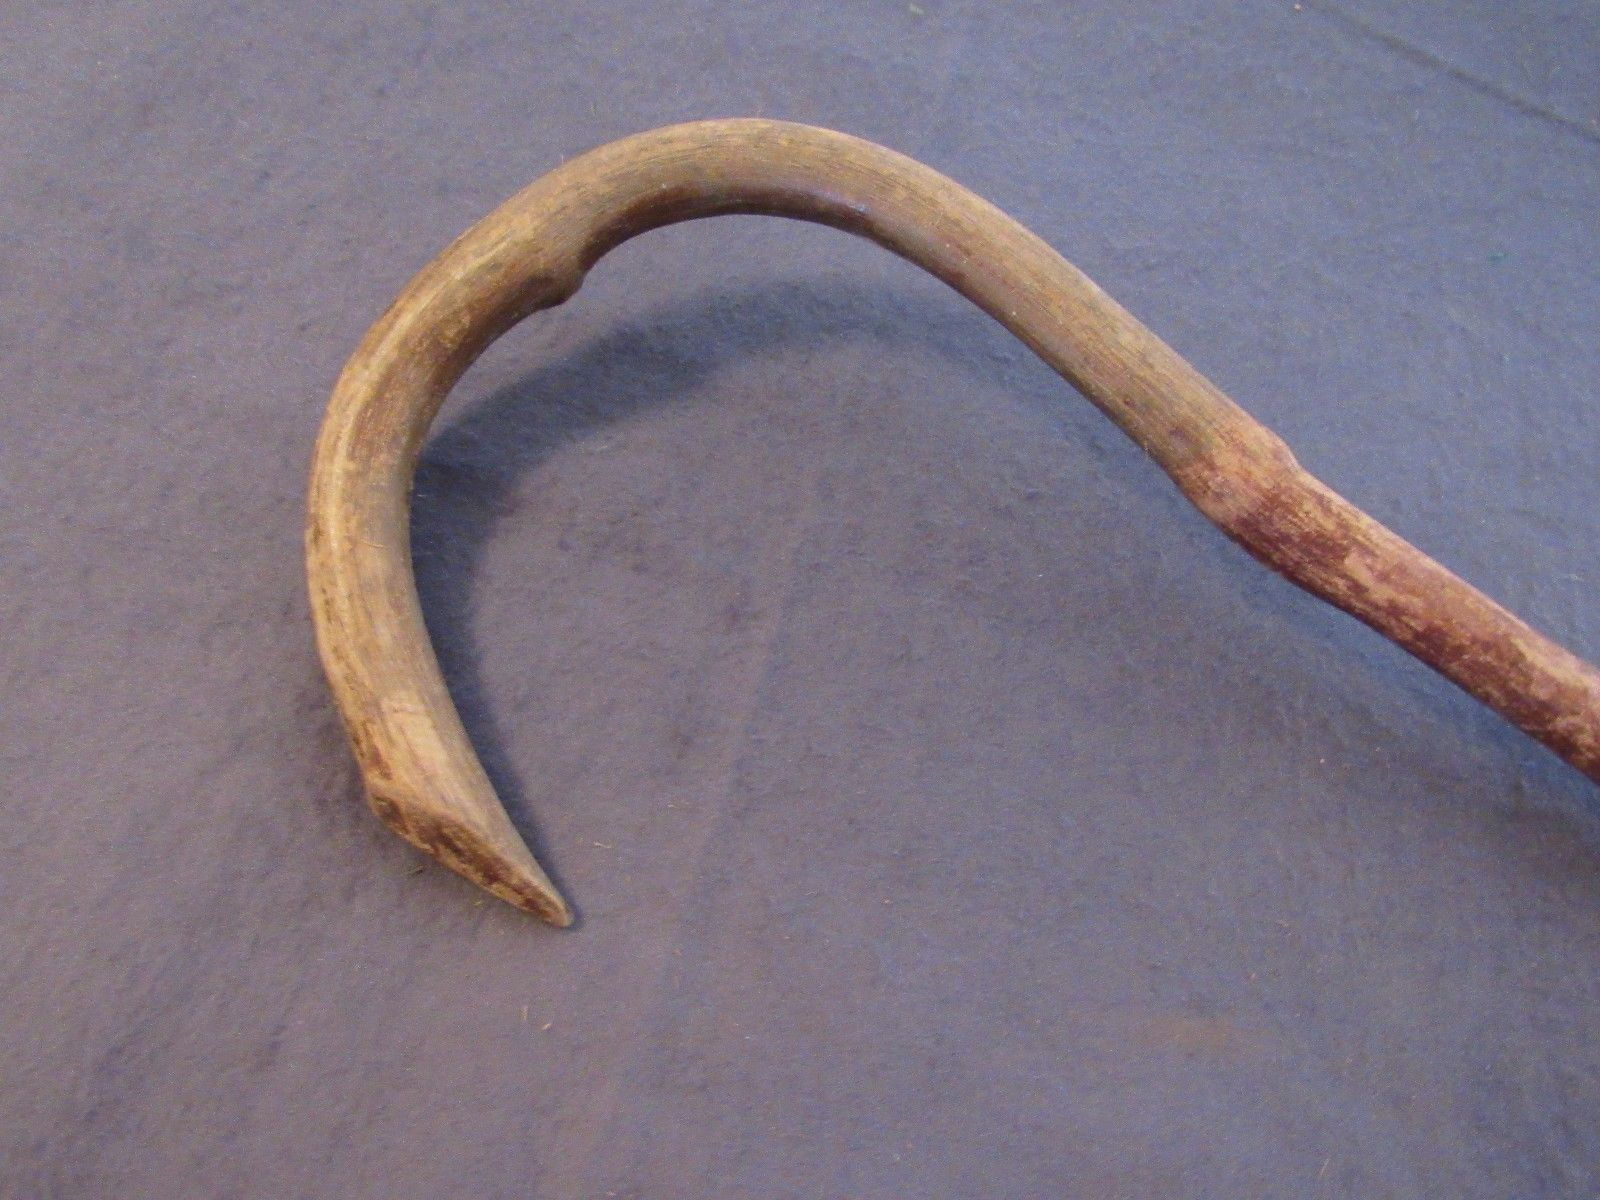 Vintage Hand Carved Wood Cane Walking Stick Knotty Bent Wood 33.25""